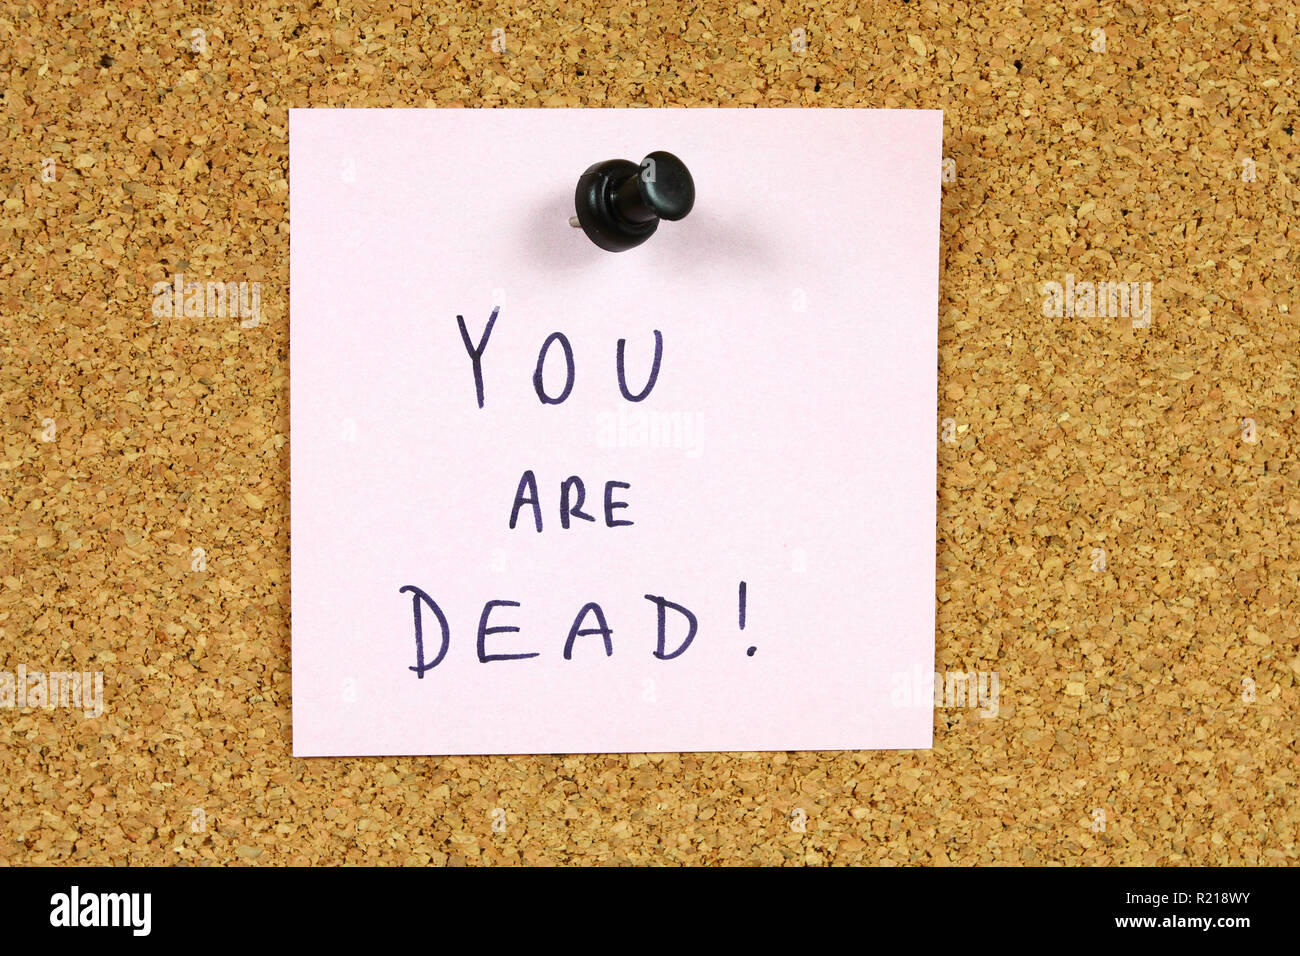 Pink sticky note pinned to an office notice board. You are dead - death threat, punishable crime. - Stock Image